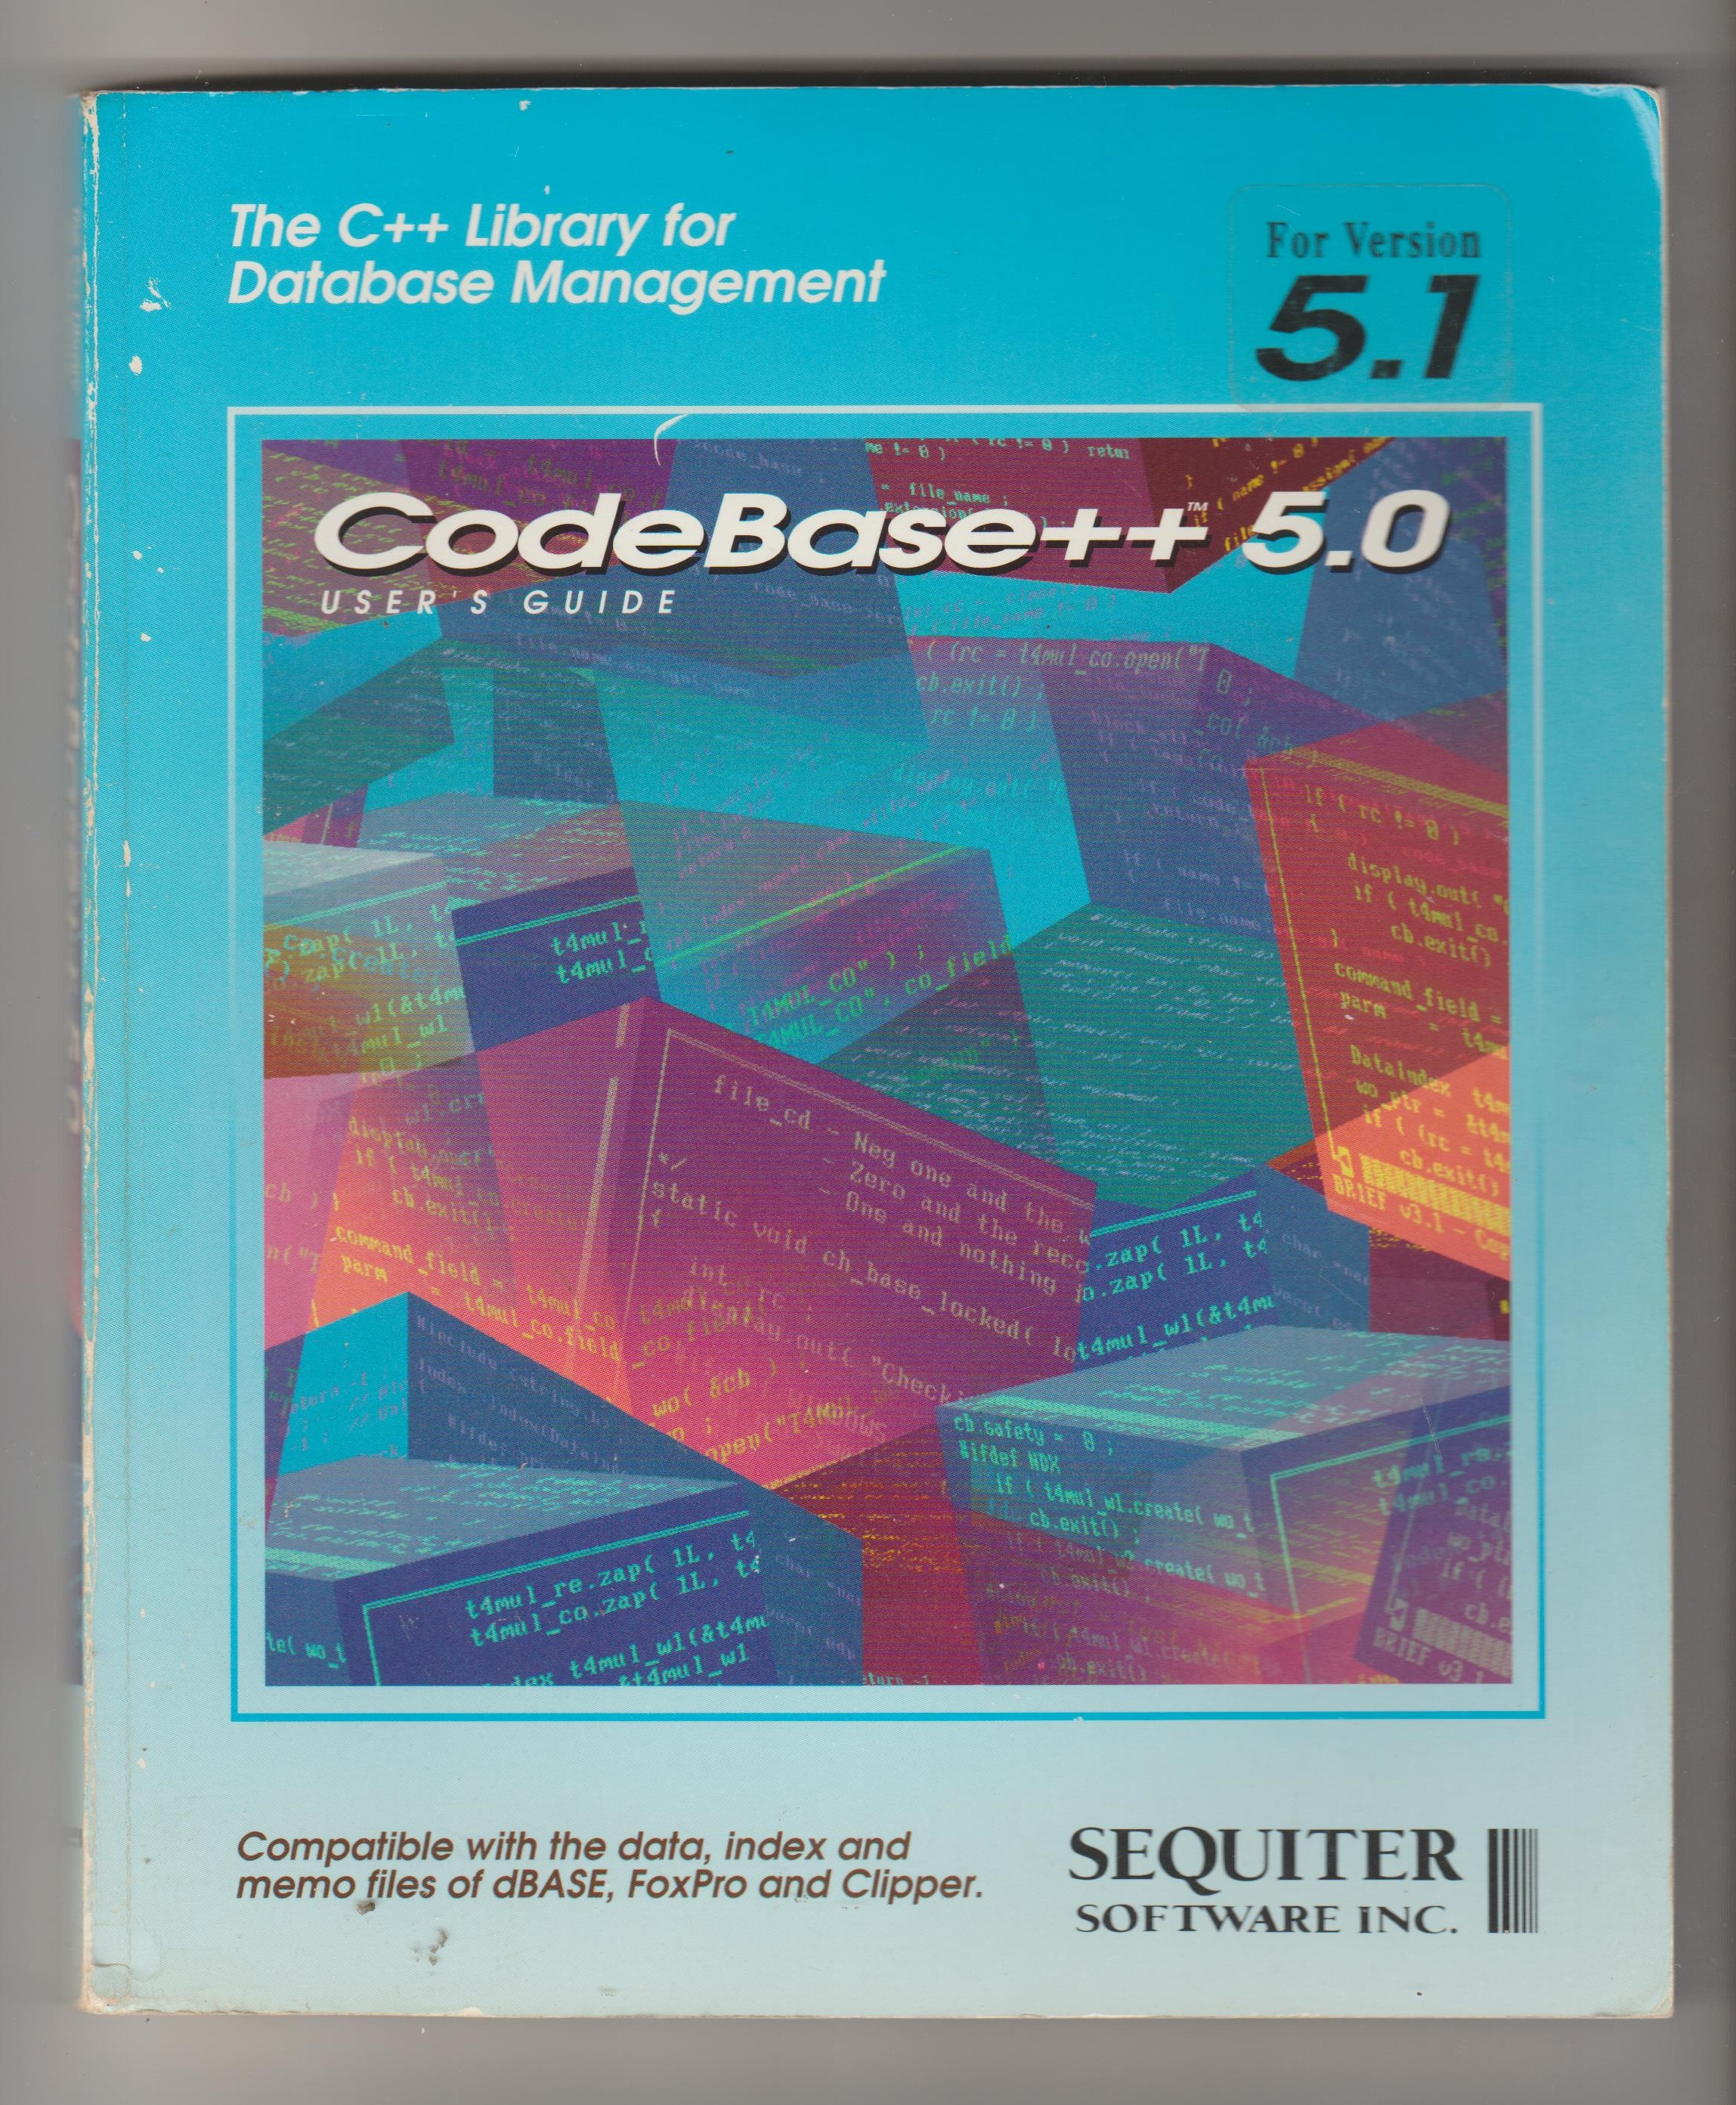 CodeBase++ 5.0 user's guide, the C++ Library for Database Management, for version 5.1 (anglicky)